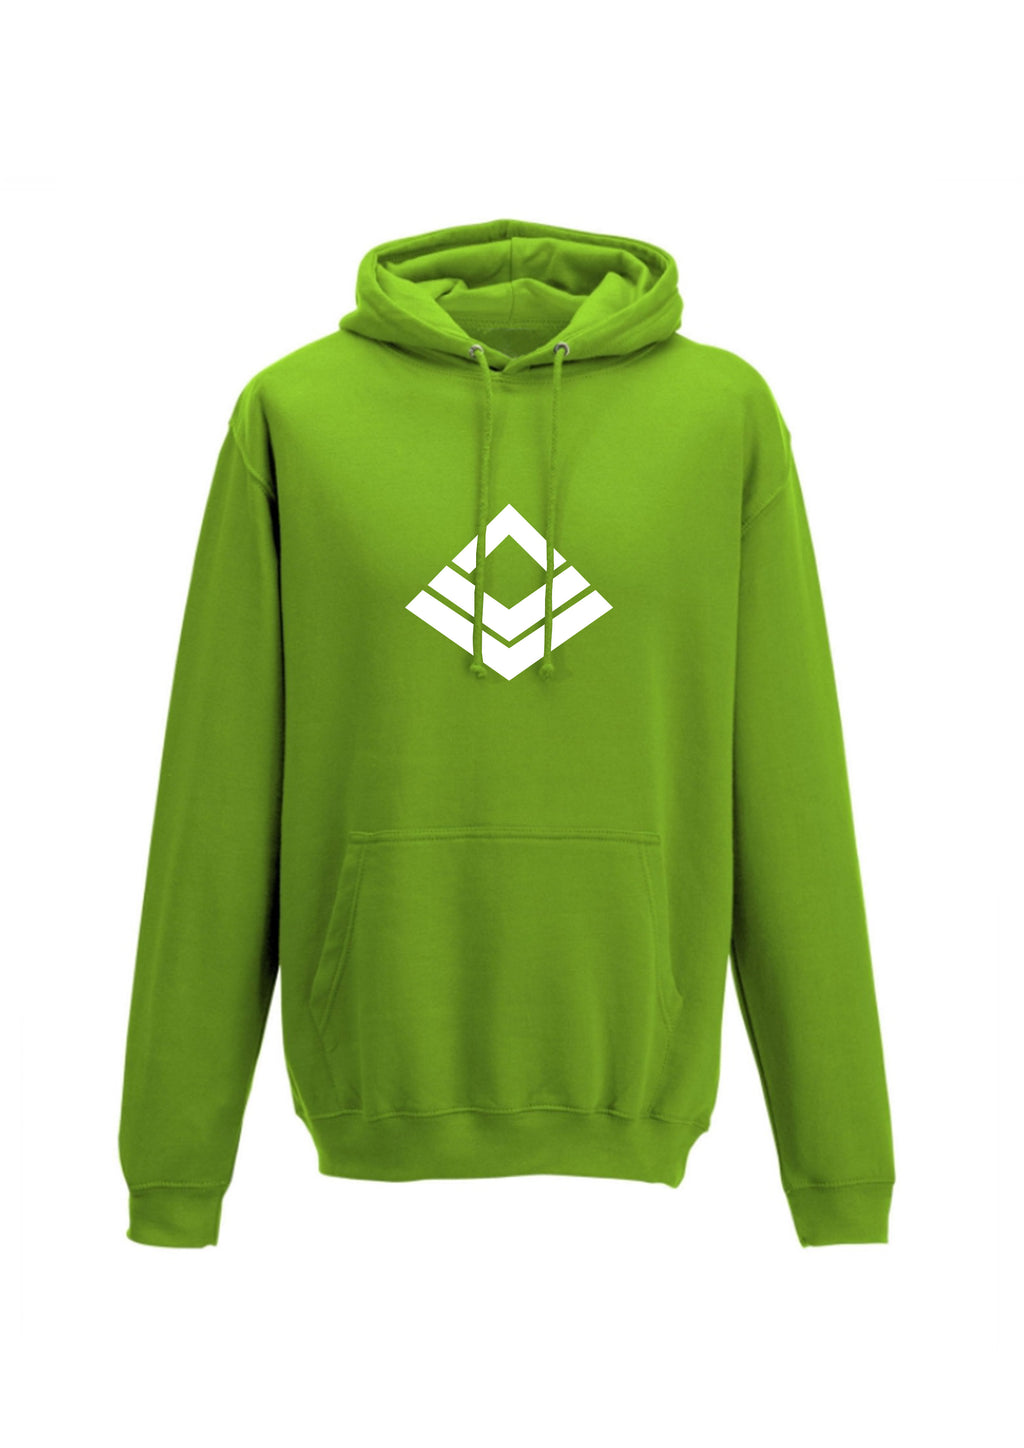 Leaf Green Swaggerlicious London Casual Hoodie - swaggerlicious-clothing.com